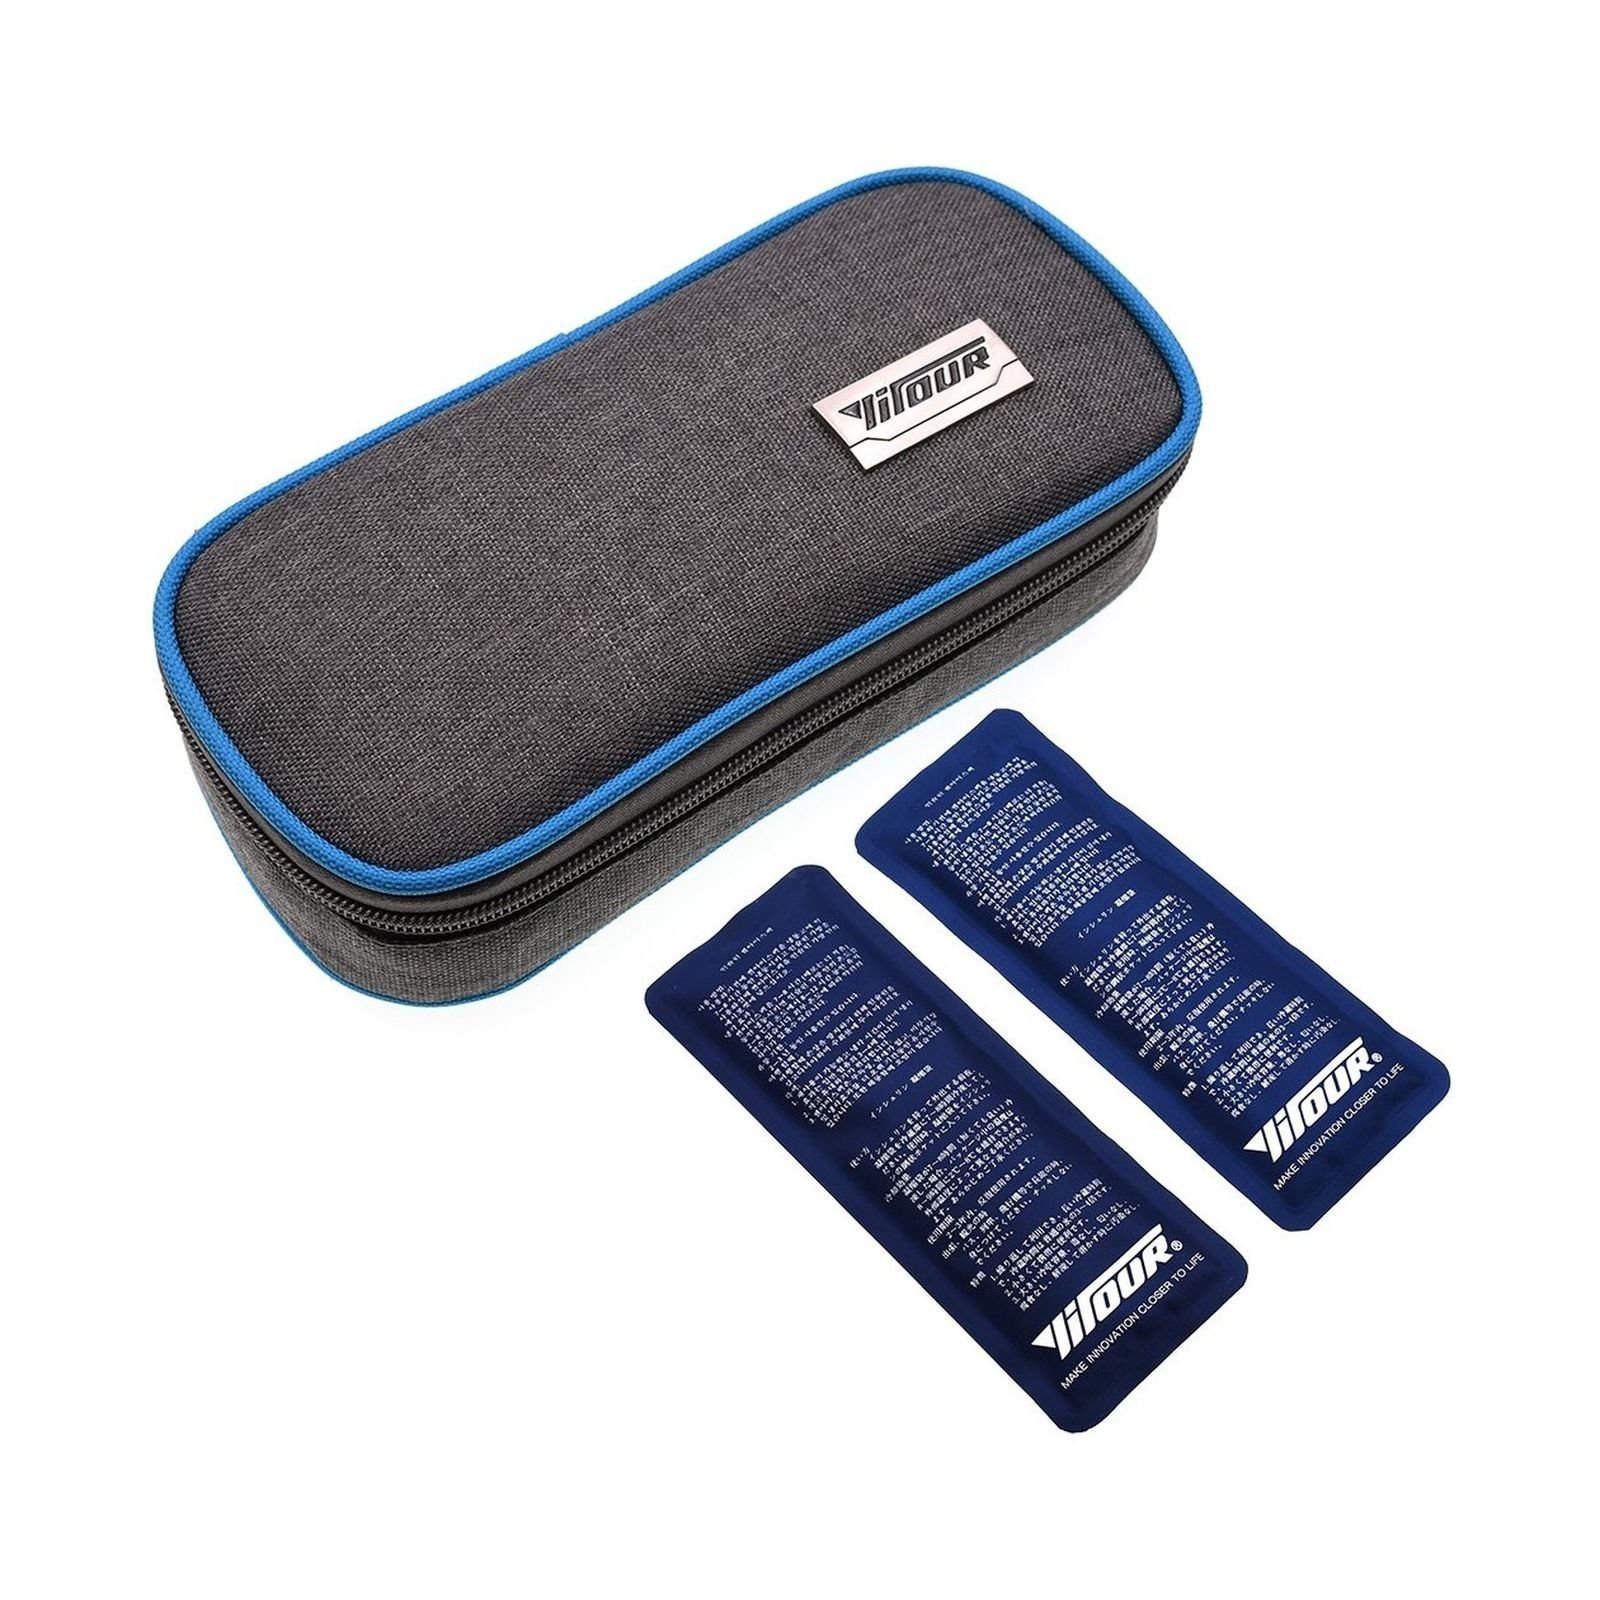 Meigirlxy Insulin Cooler Travel Case with 2 Ice Packs, Portable Medicine Carrying Bag Diabetic Organizer Fit for Vials, Syringes (Blue)